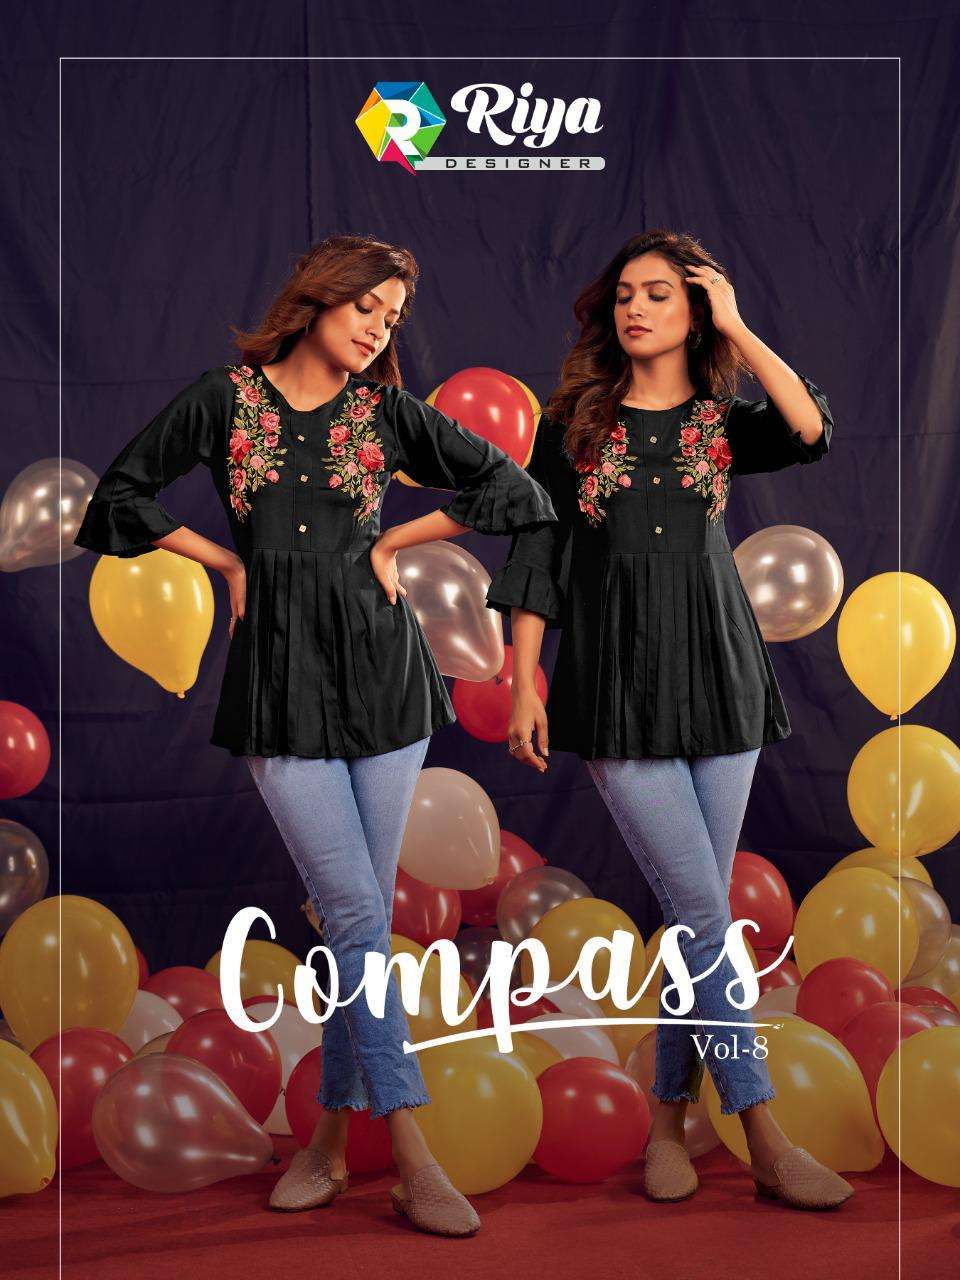 Riya Designer Compass Vol 8 Embroidery Short Tops new Collection